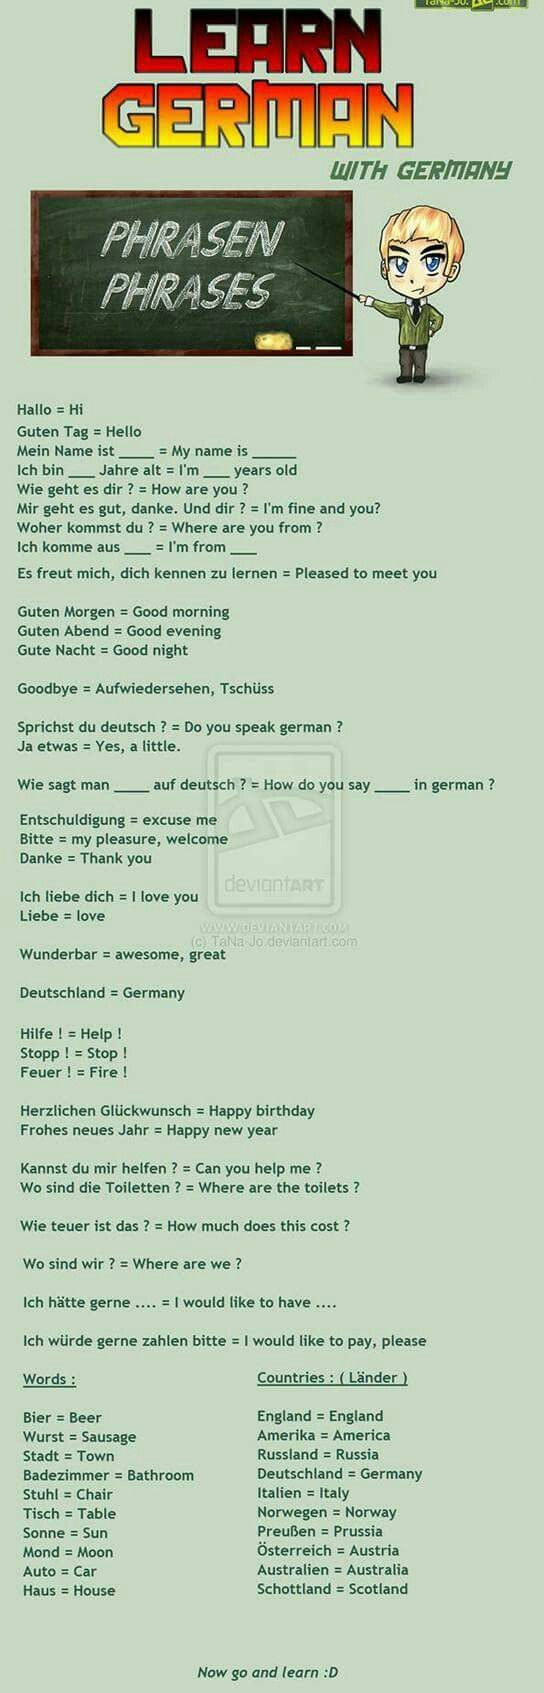 16 best Englisch images on Pinterest | German language learning ...